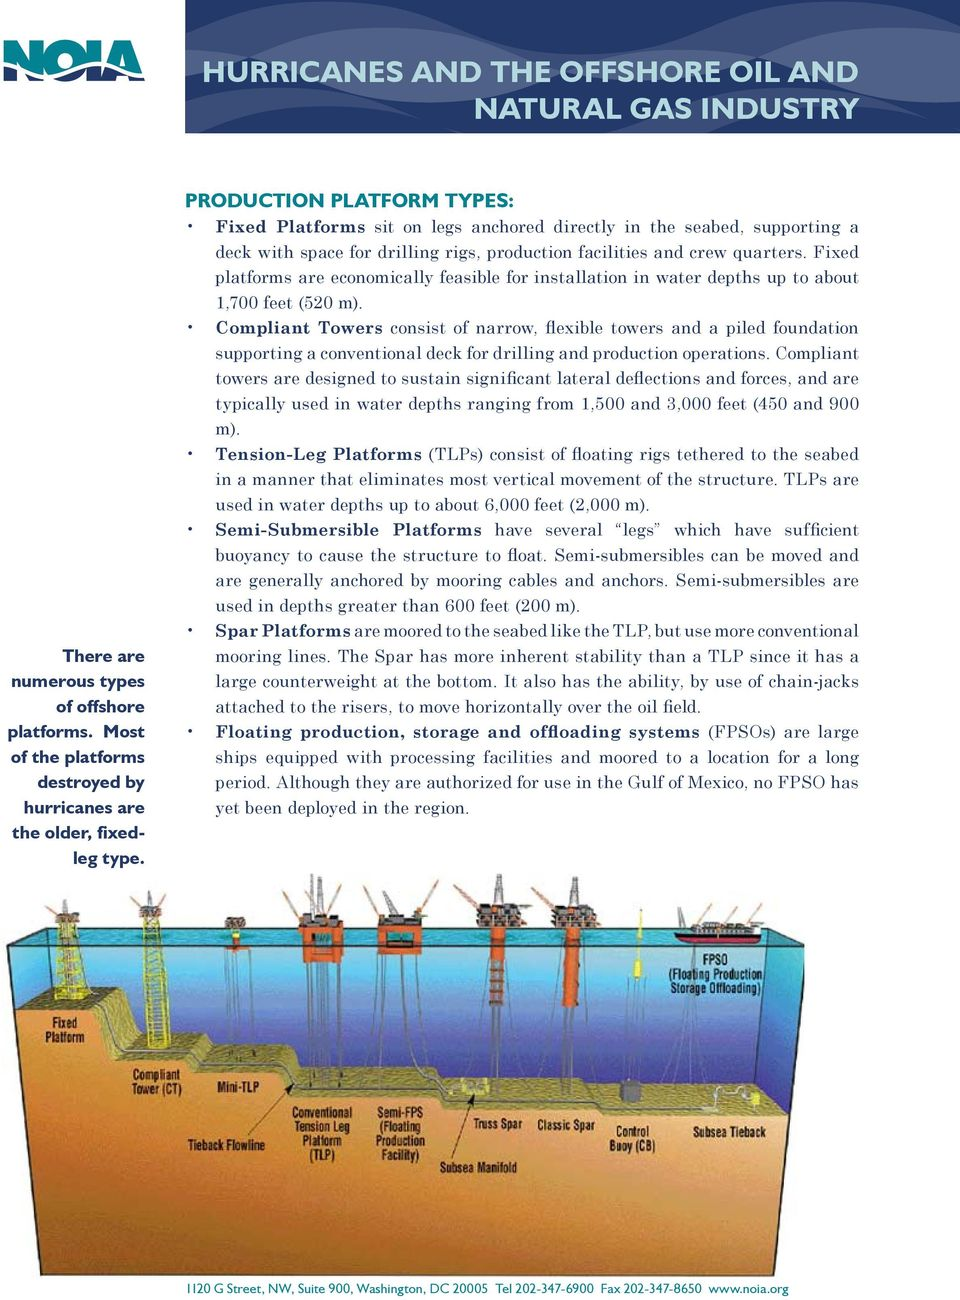 Fixed platforms are economically feasible for installation in water depths up to about 1,700 feet (520 m).